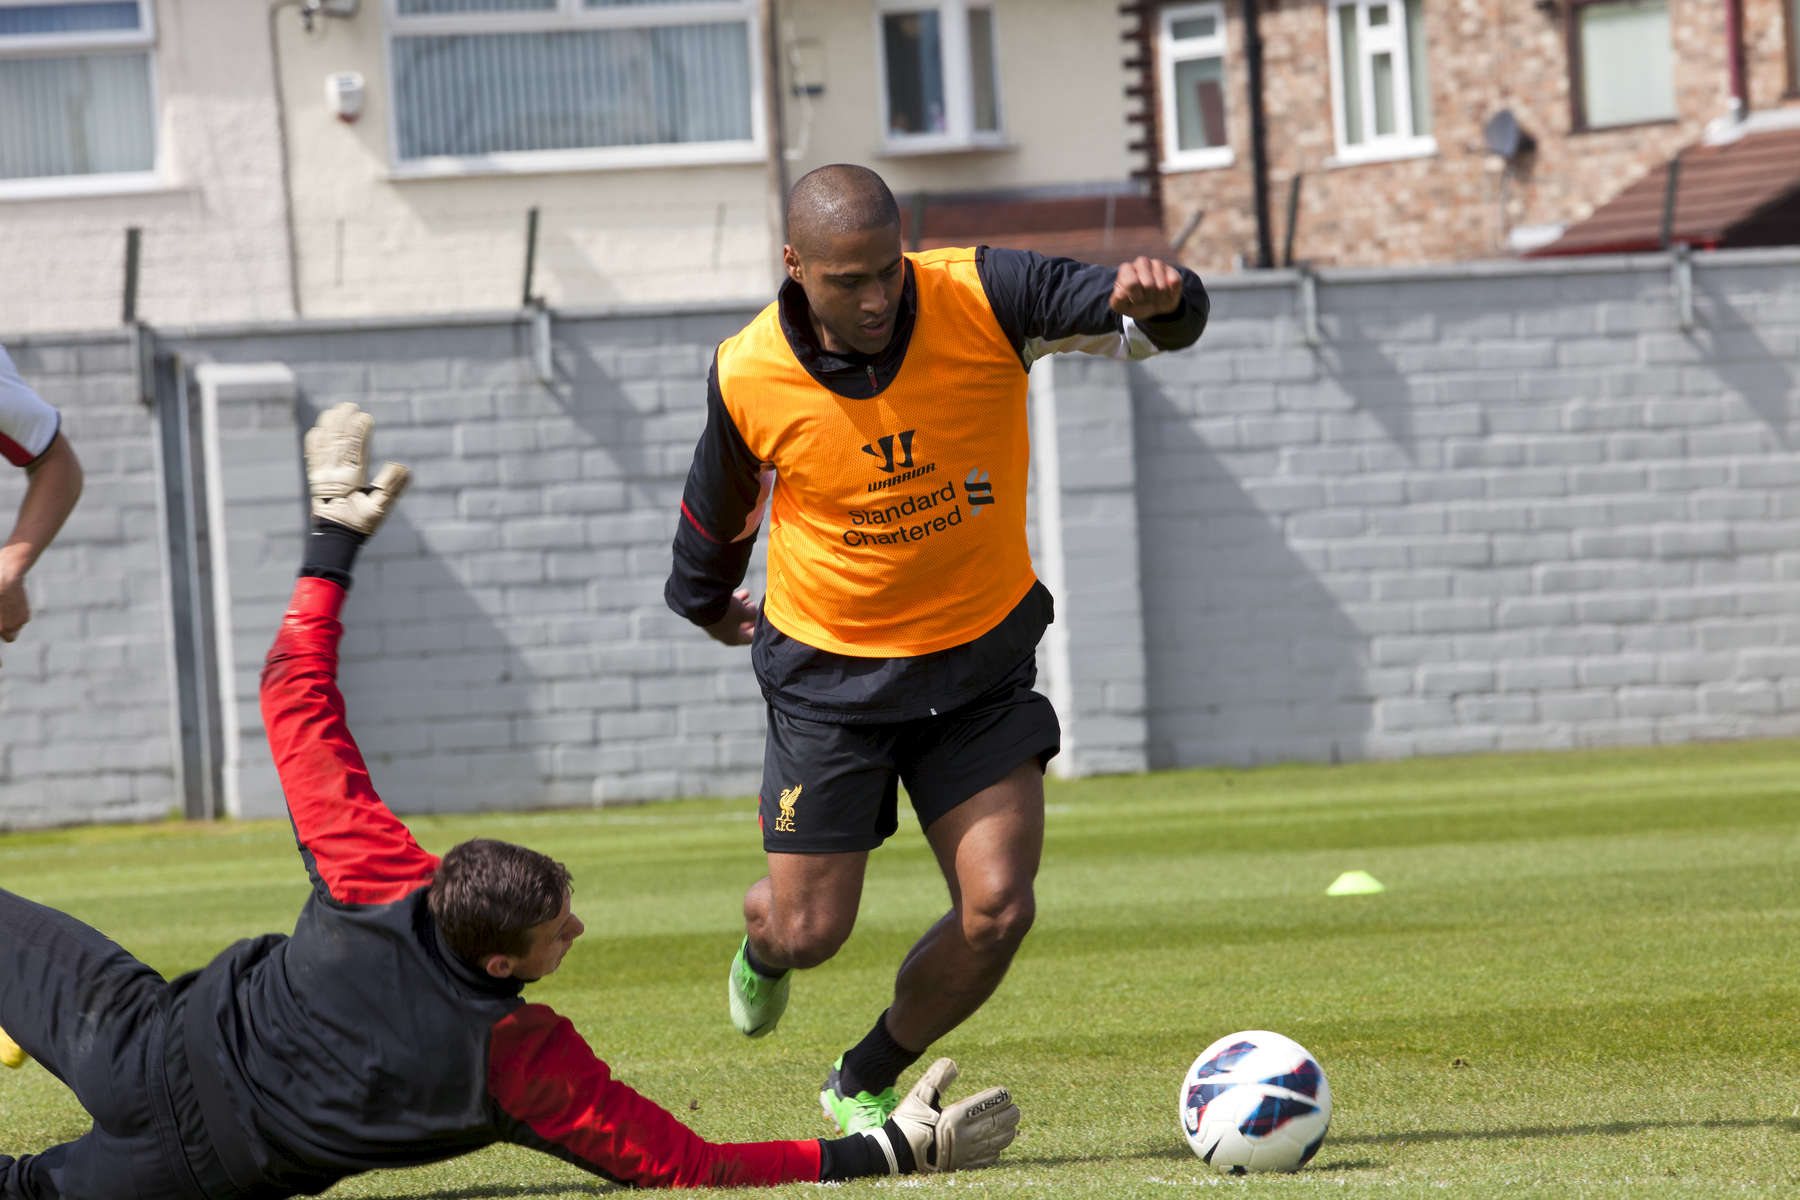 England and Liverpool FC right back Glen Johnson rounds the keeper during a training session at Melwood.Melwood is the Liverpool FC training ground, located in the West Derby area of Liverpool. It is seperate from the Liverpool Academy, which is based in Kirkby.Melwood was redeveloped in the early 2000′s with large input from then-manager Gerard Houllier and now features some of the best facilities in Europe. It has been the club's training ground since the fifties and was previously transformed into a top class facility by Bill Shankly.Facilities include sythetic pitches, rehabilitation rooms, press and meeting rooms, gymnasium, swimming pool, restaurant and recreational facilities.